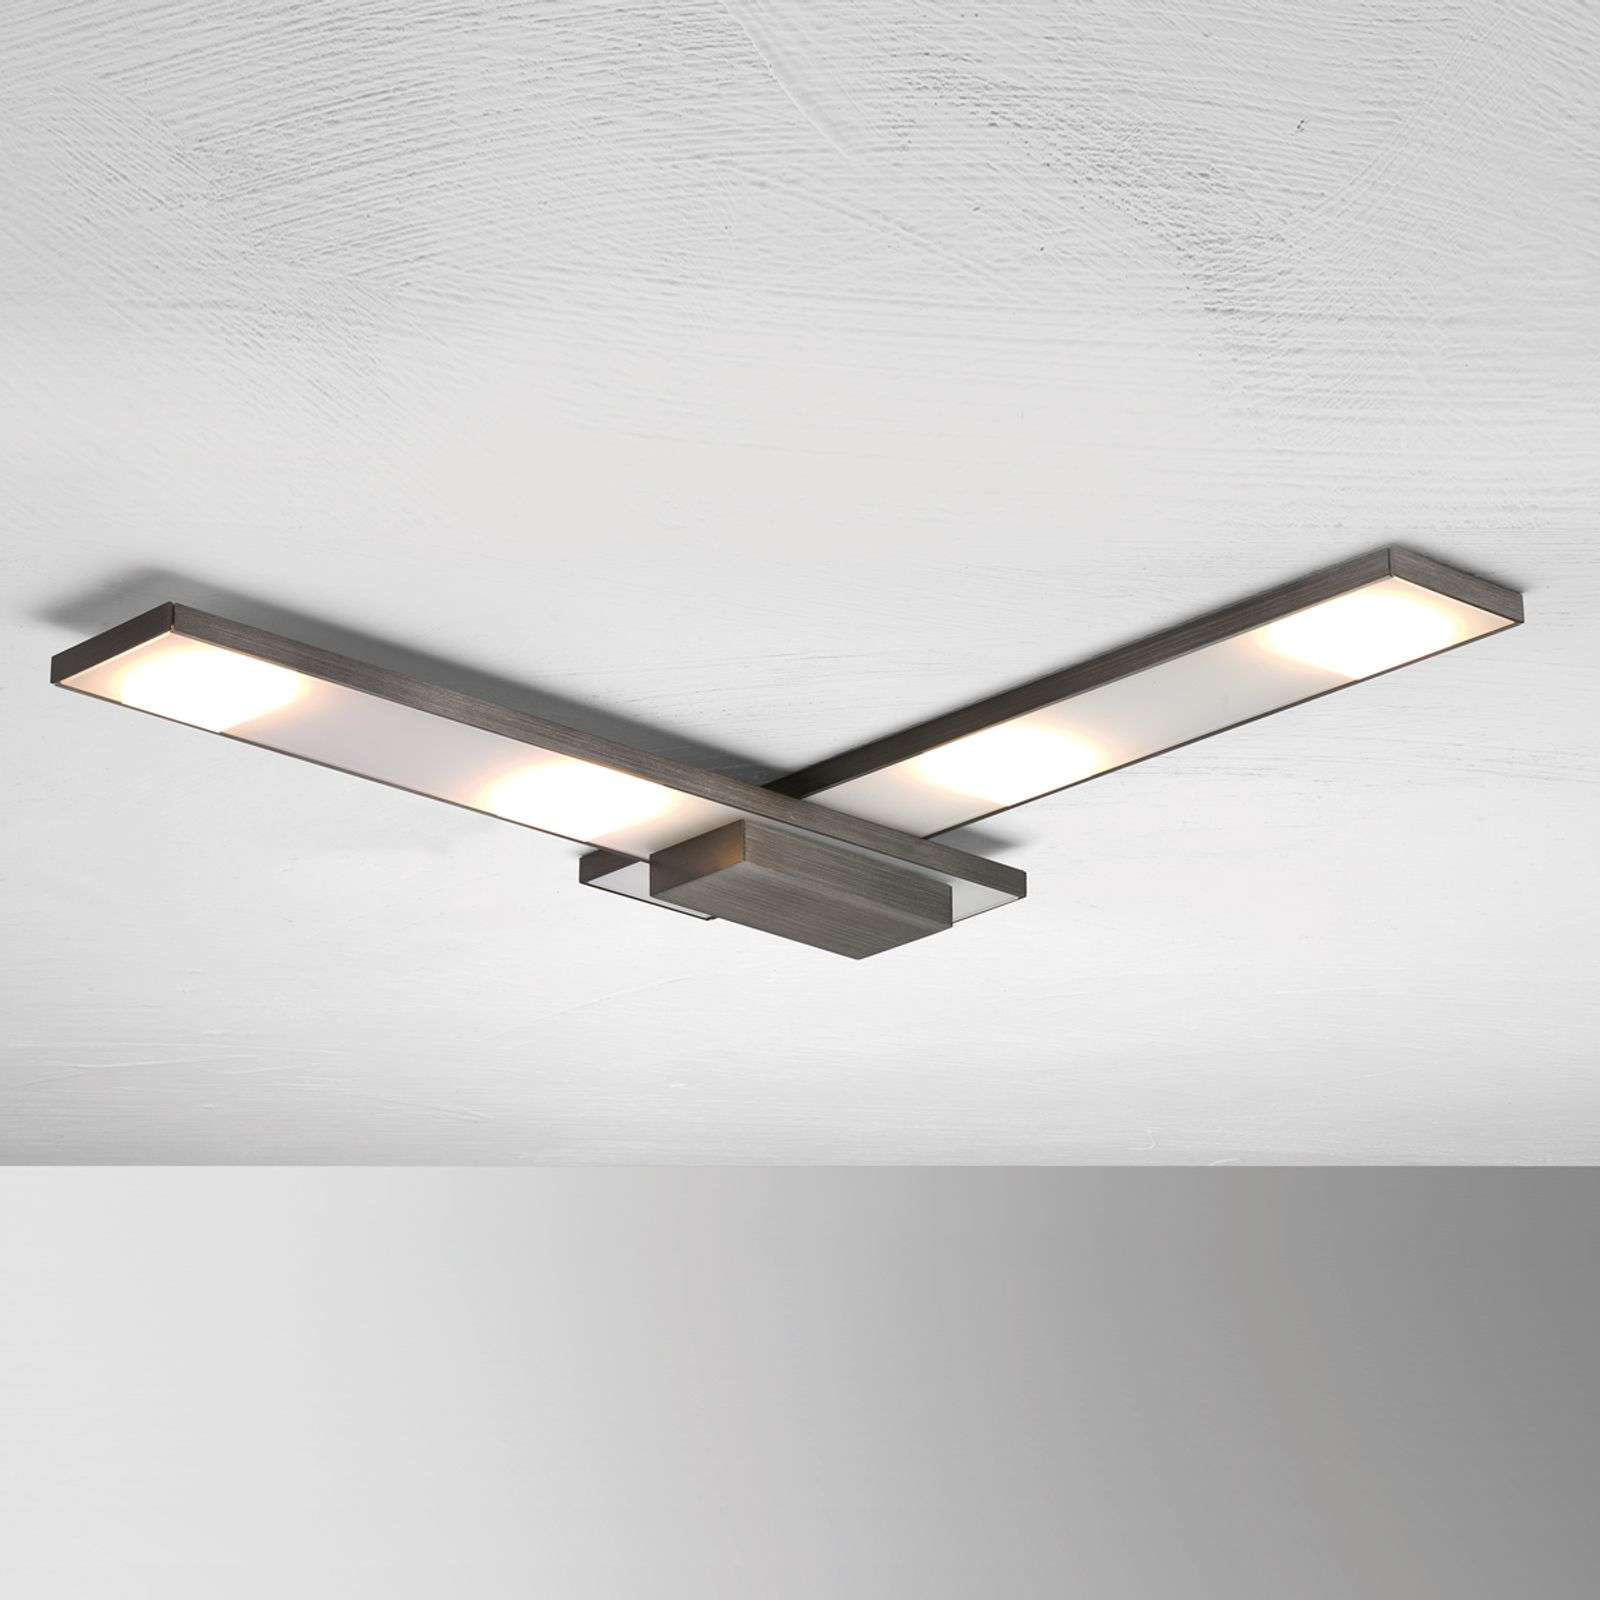 Raffinata plafoniera LED Slight, antracite